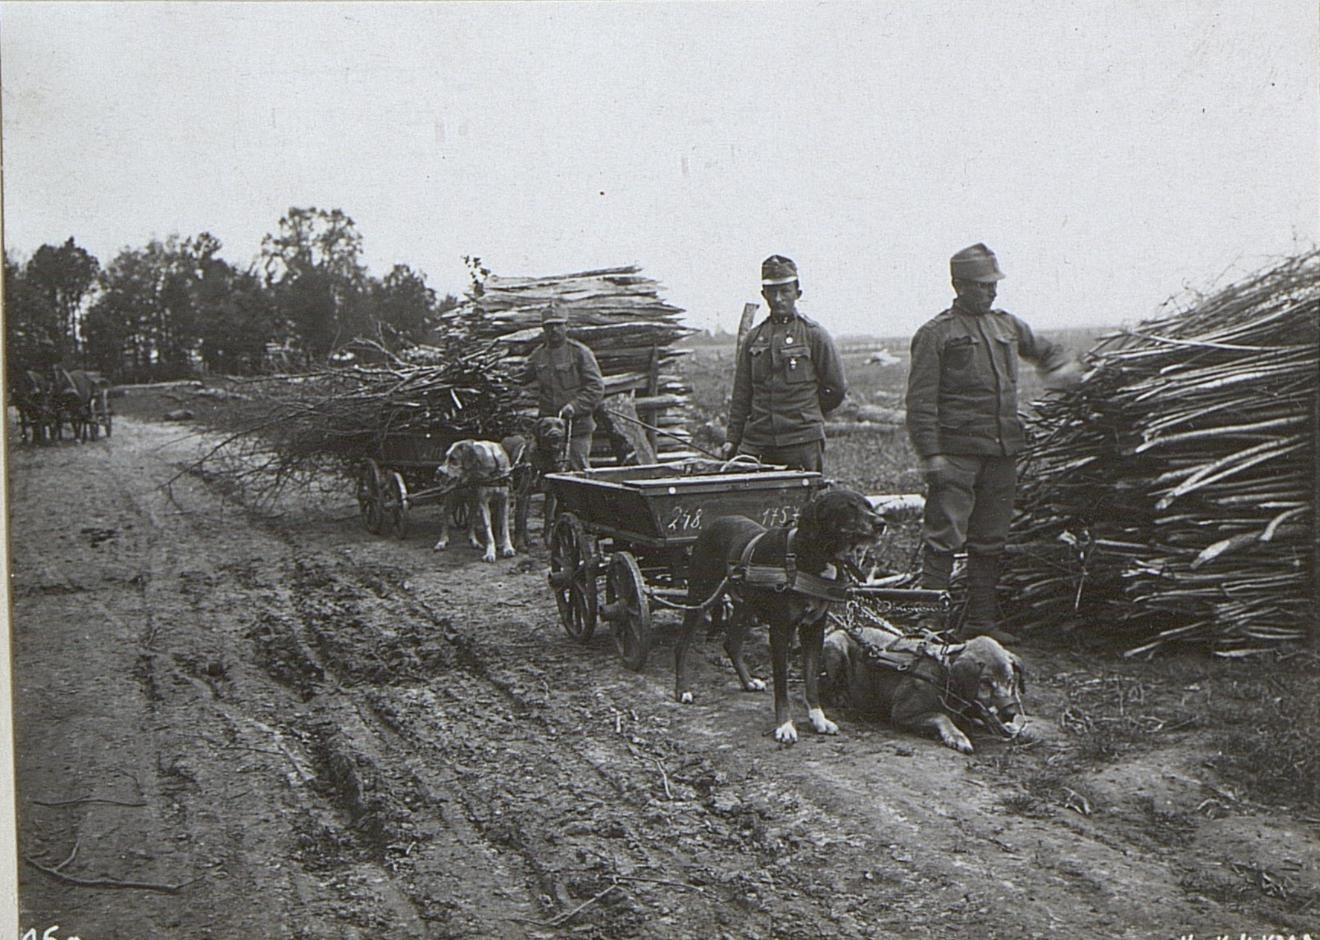 Dogs at work, Austrian Army. (Österreichsische Nationalbibliothek)